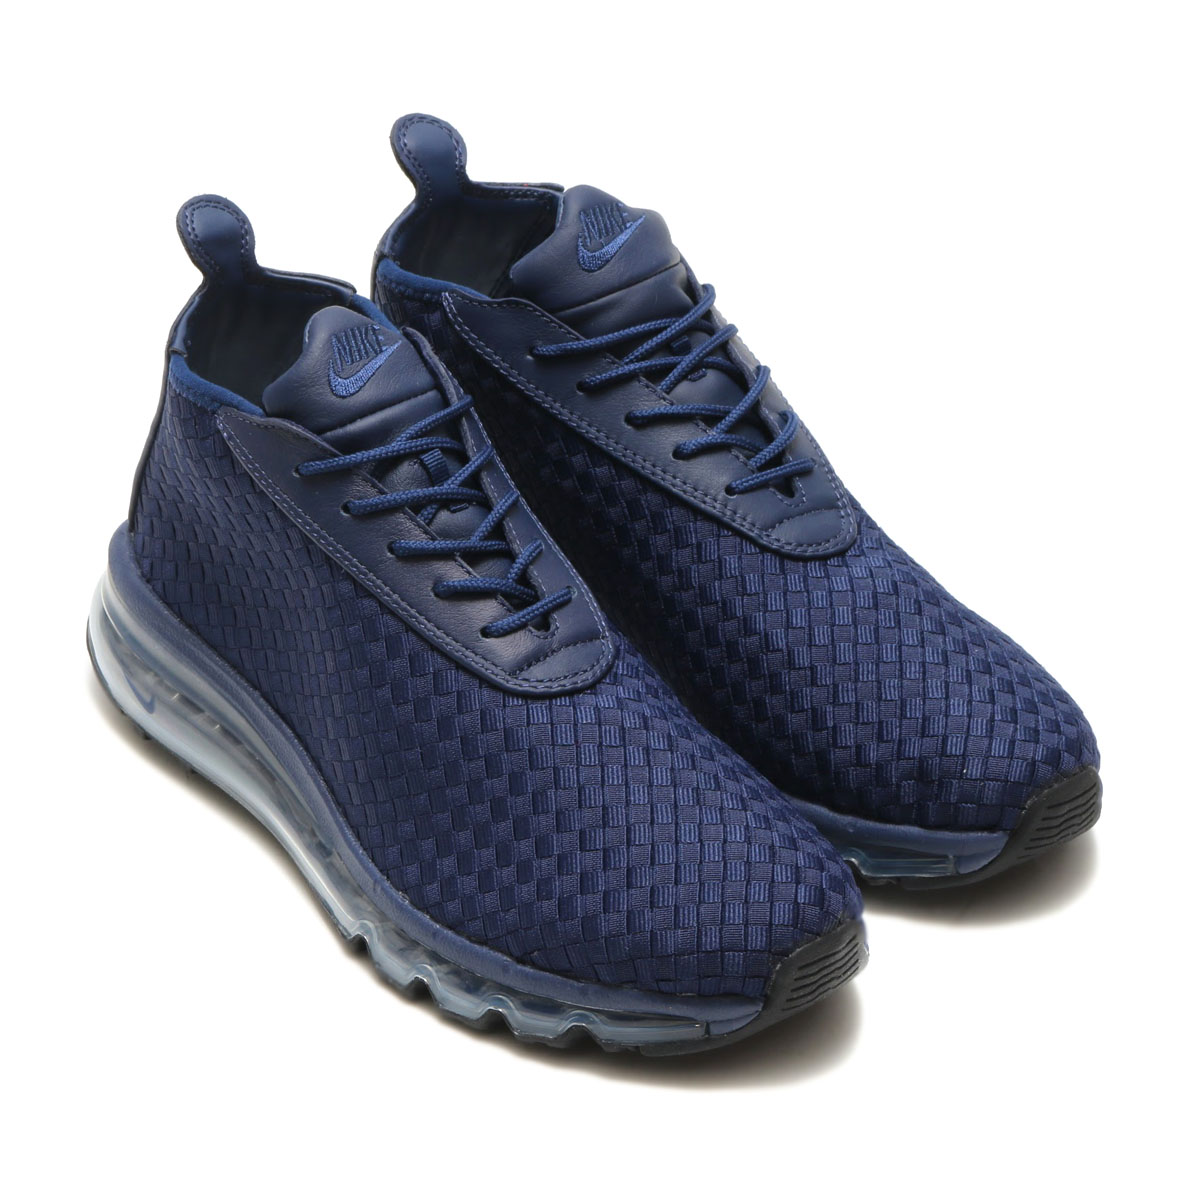 big sale 612fd edde1 The appearance of the HYBRID model who matched 360 AIR MAX touring with  upper of AIR WOVEN BOOT. The nu modern AIR MAX-style that merged クッショニング of  ...